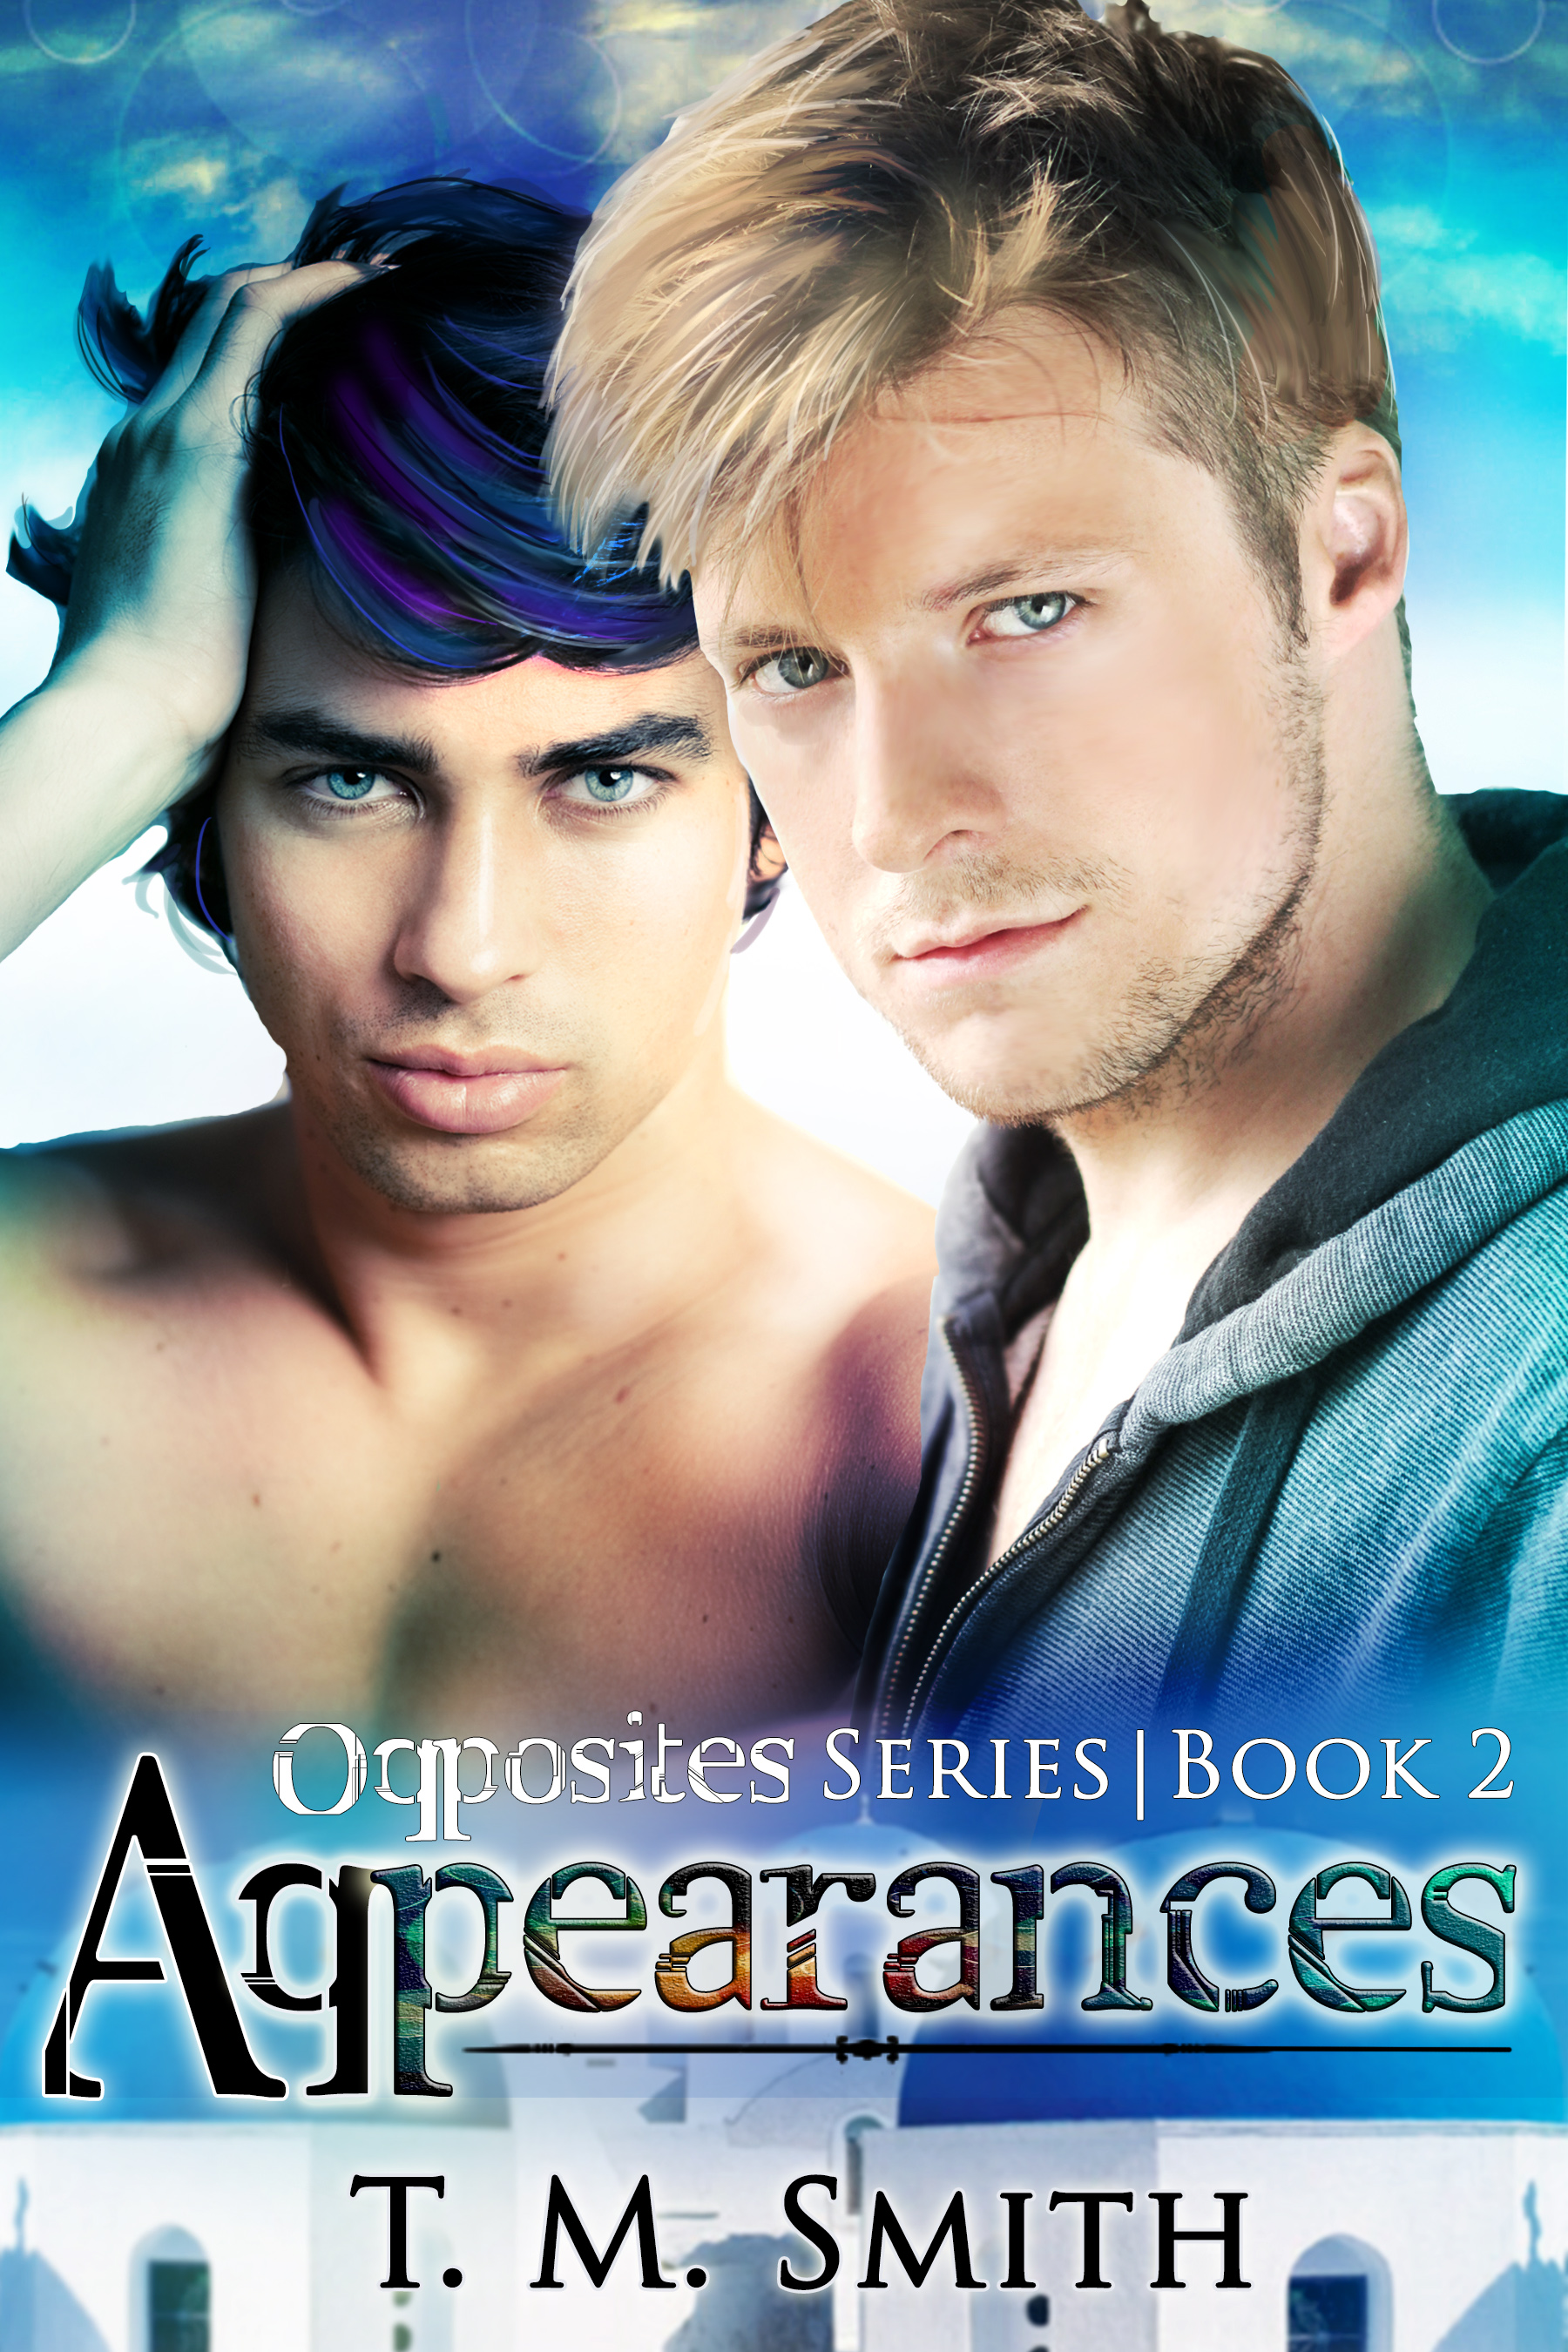 Cover Reveal: Appearances by T.M. Smith